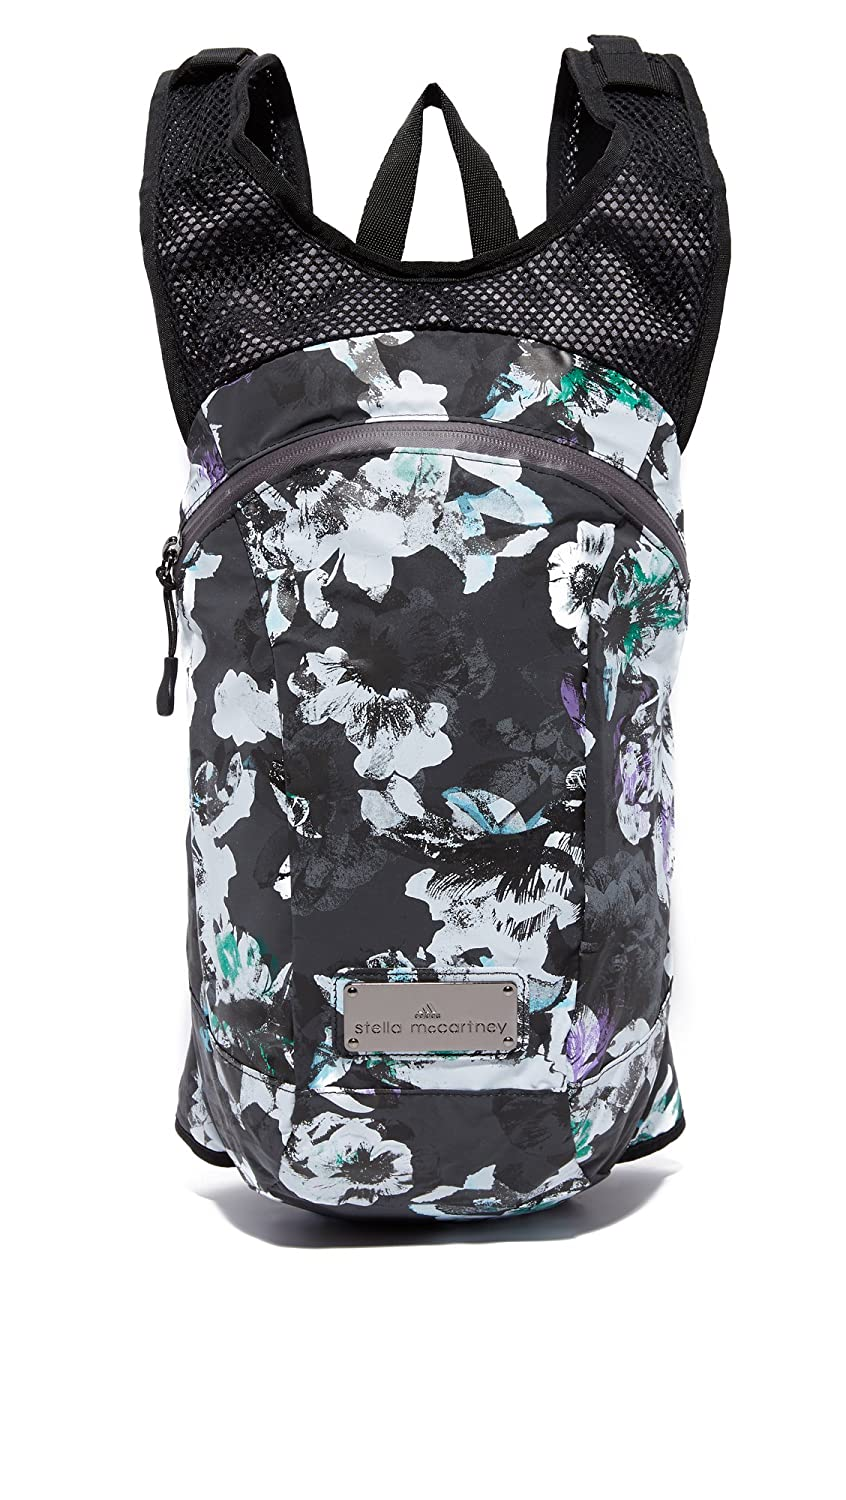 fdea635458f8 Amazon.com  adidas by Stella McCartney Women s Backpack